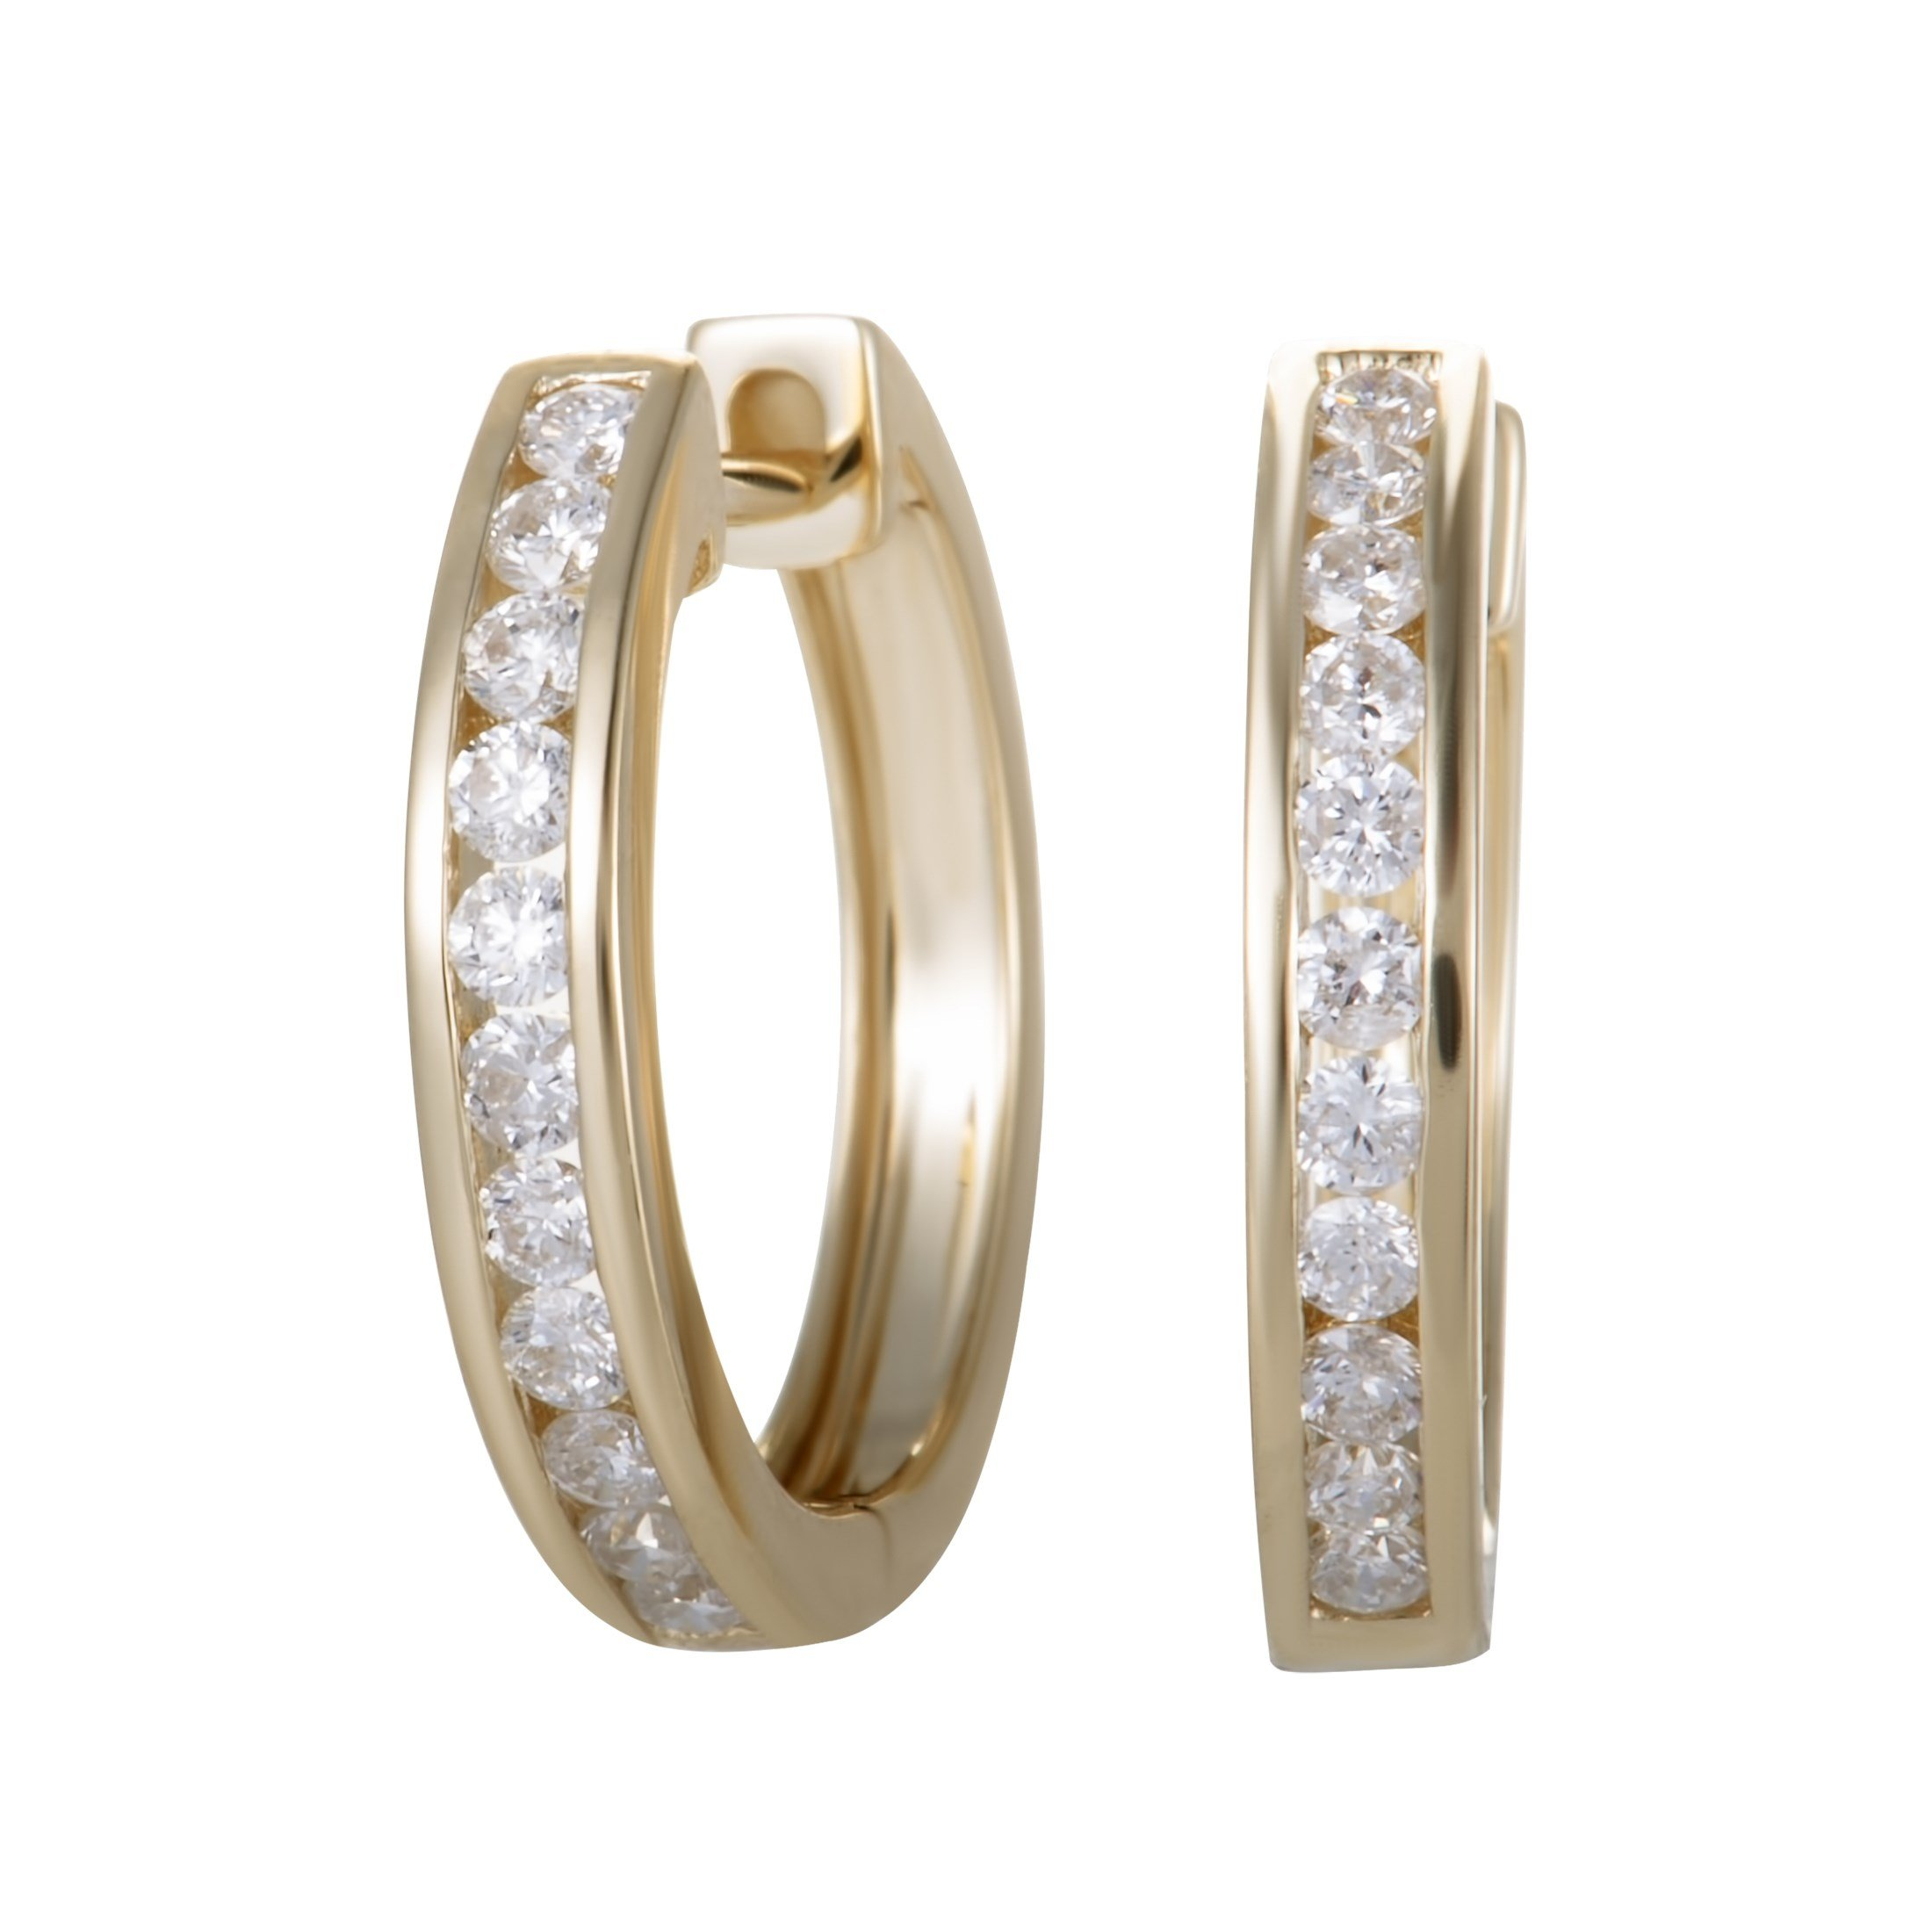 0.5 Carat (ctw) Round Diamond Hoop Earrings; 1/2 CT White Diamonds (G Color, SI1-SI2 Clarity) in 0.62'' 14K Yellow Gold Hoops